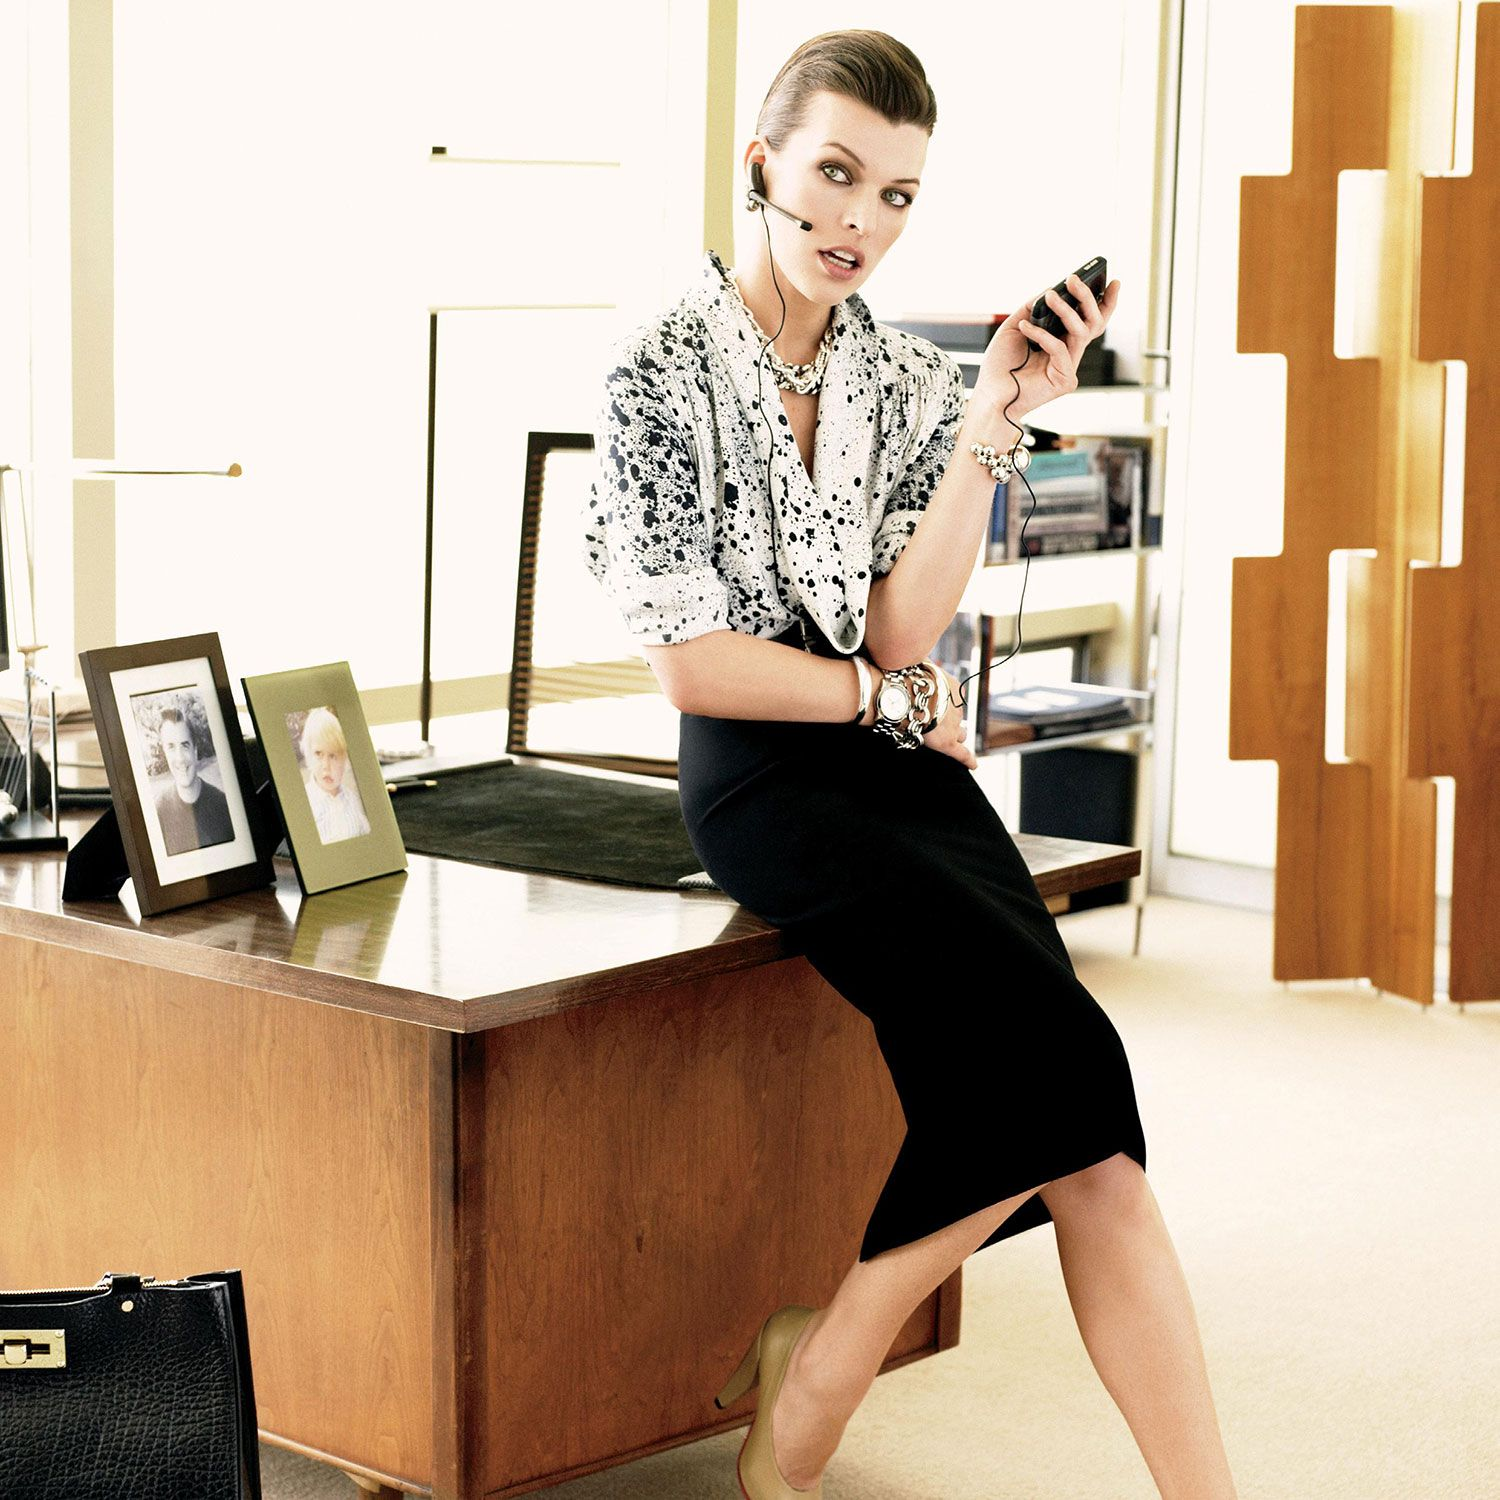 10 Rules for a Chic Workplace Wardrobe